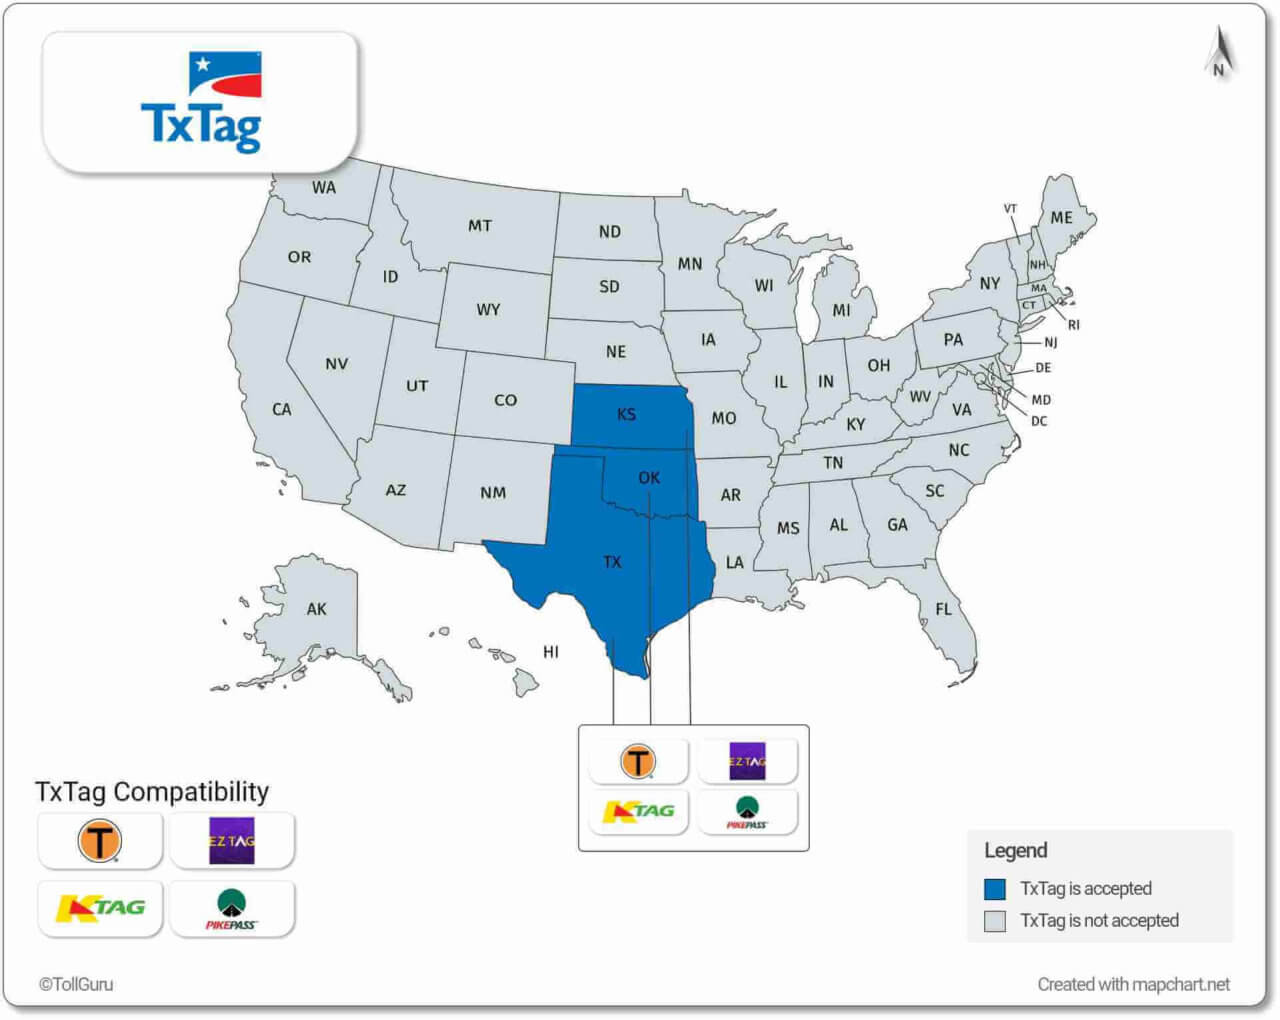 TxTag is accepted in Texas, Kansas and Oklahoma along with PikePass, TollTag, K-Tag and EZ-Tag.